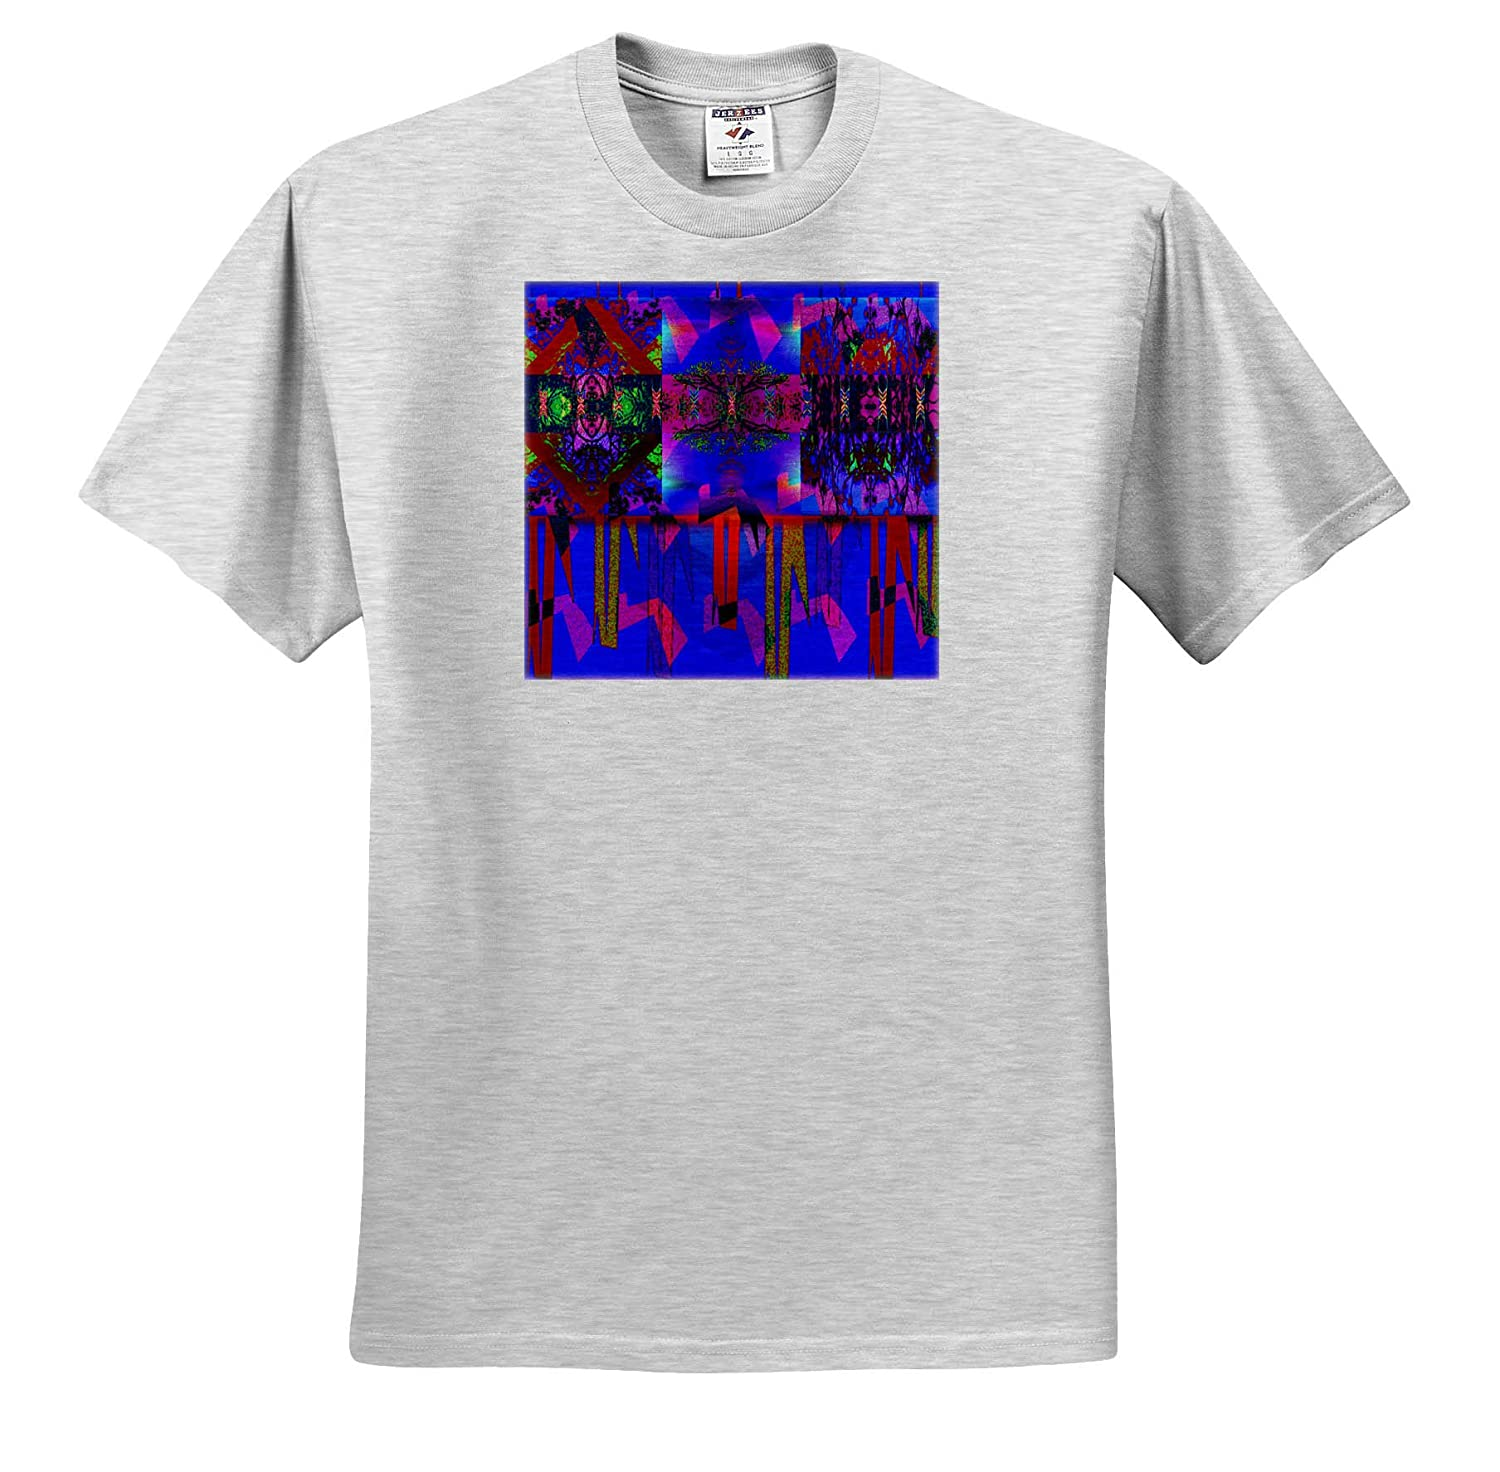 Contemporary Art Blend A Modern or Contemporary Art Blend in Blue and Pink with red 3dRose Jos Fauxtographee T-Shirts